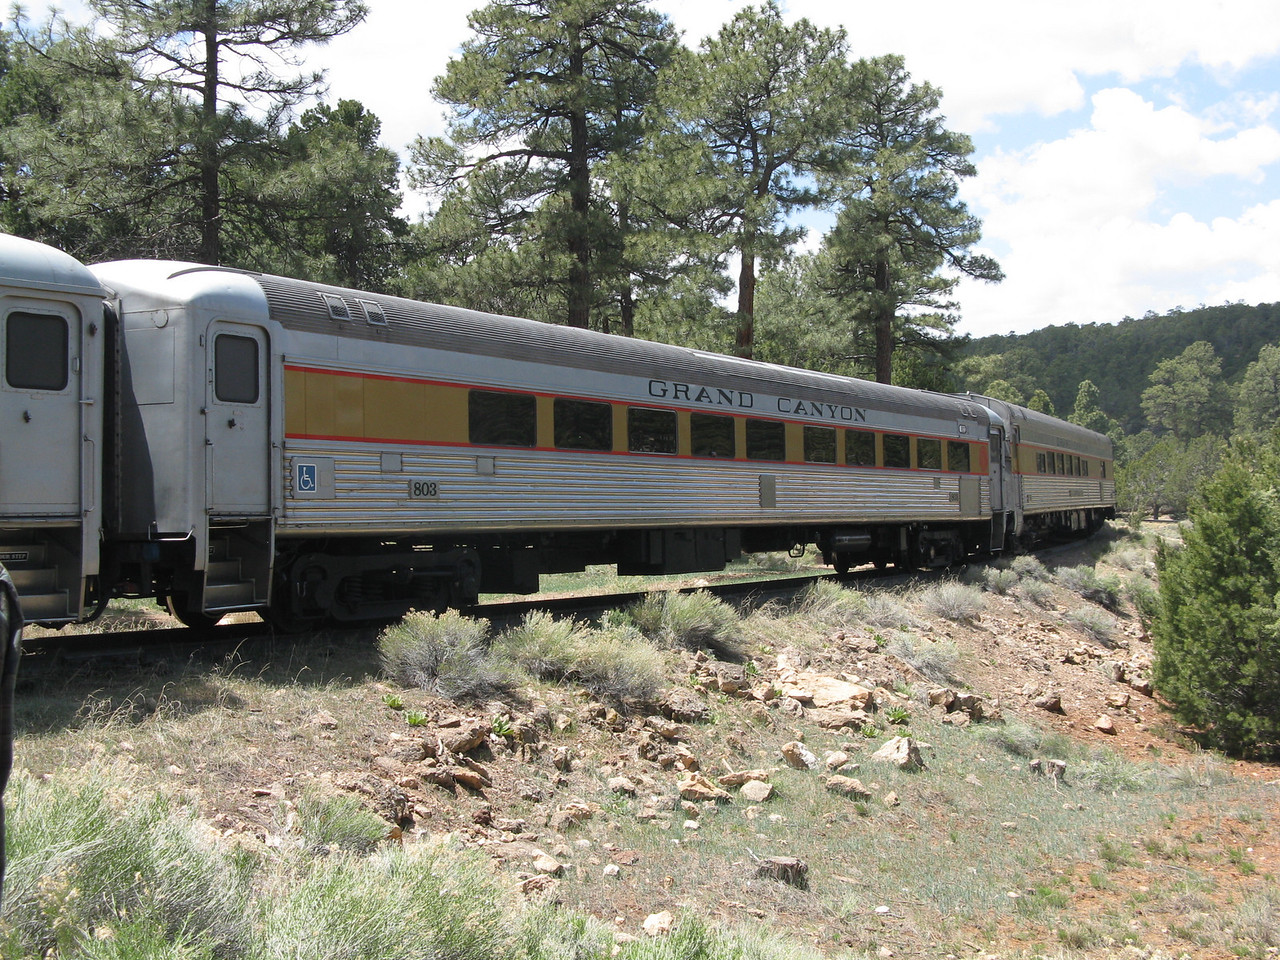 The train pulled several passenger cars.